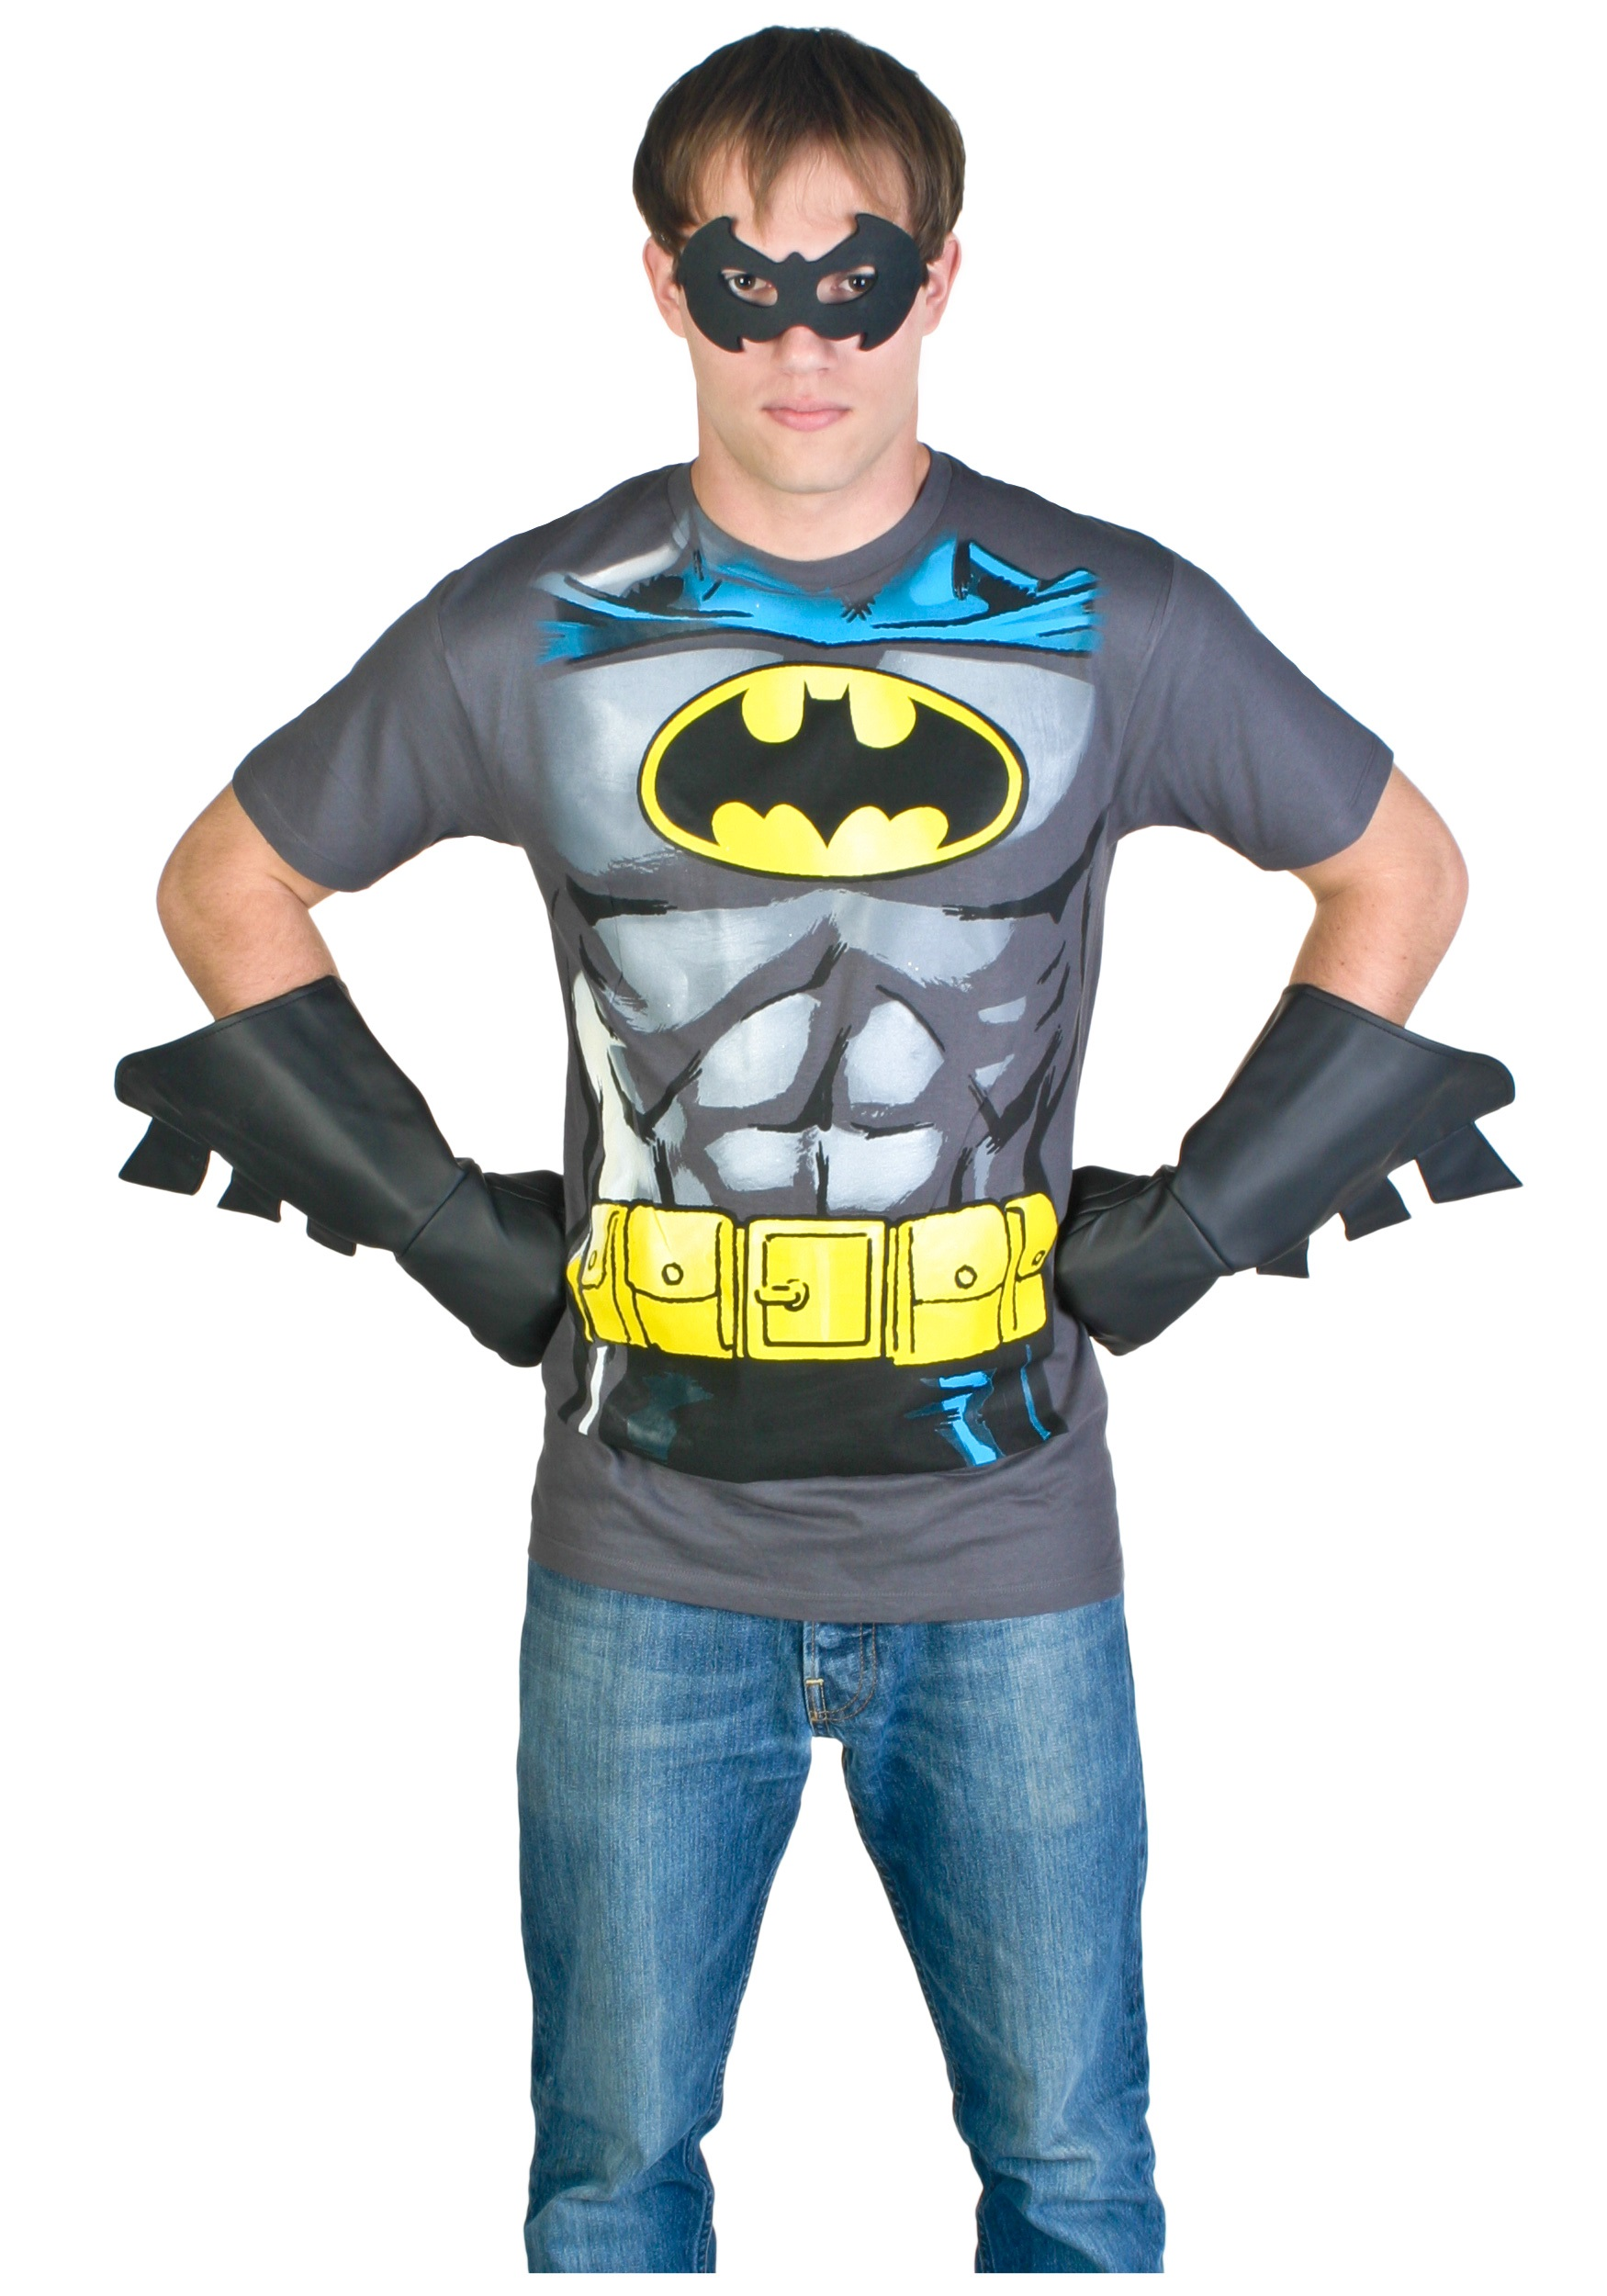 Menu0027s Batman Costume T-Shirt  sc 1 st  Halloween Costumes & Menu0027s Batman Costume T-Shirt - Halloween Costumes